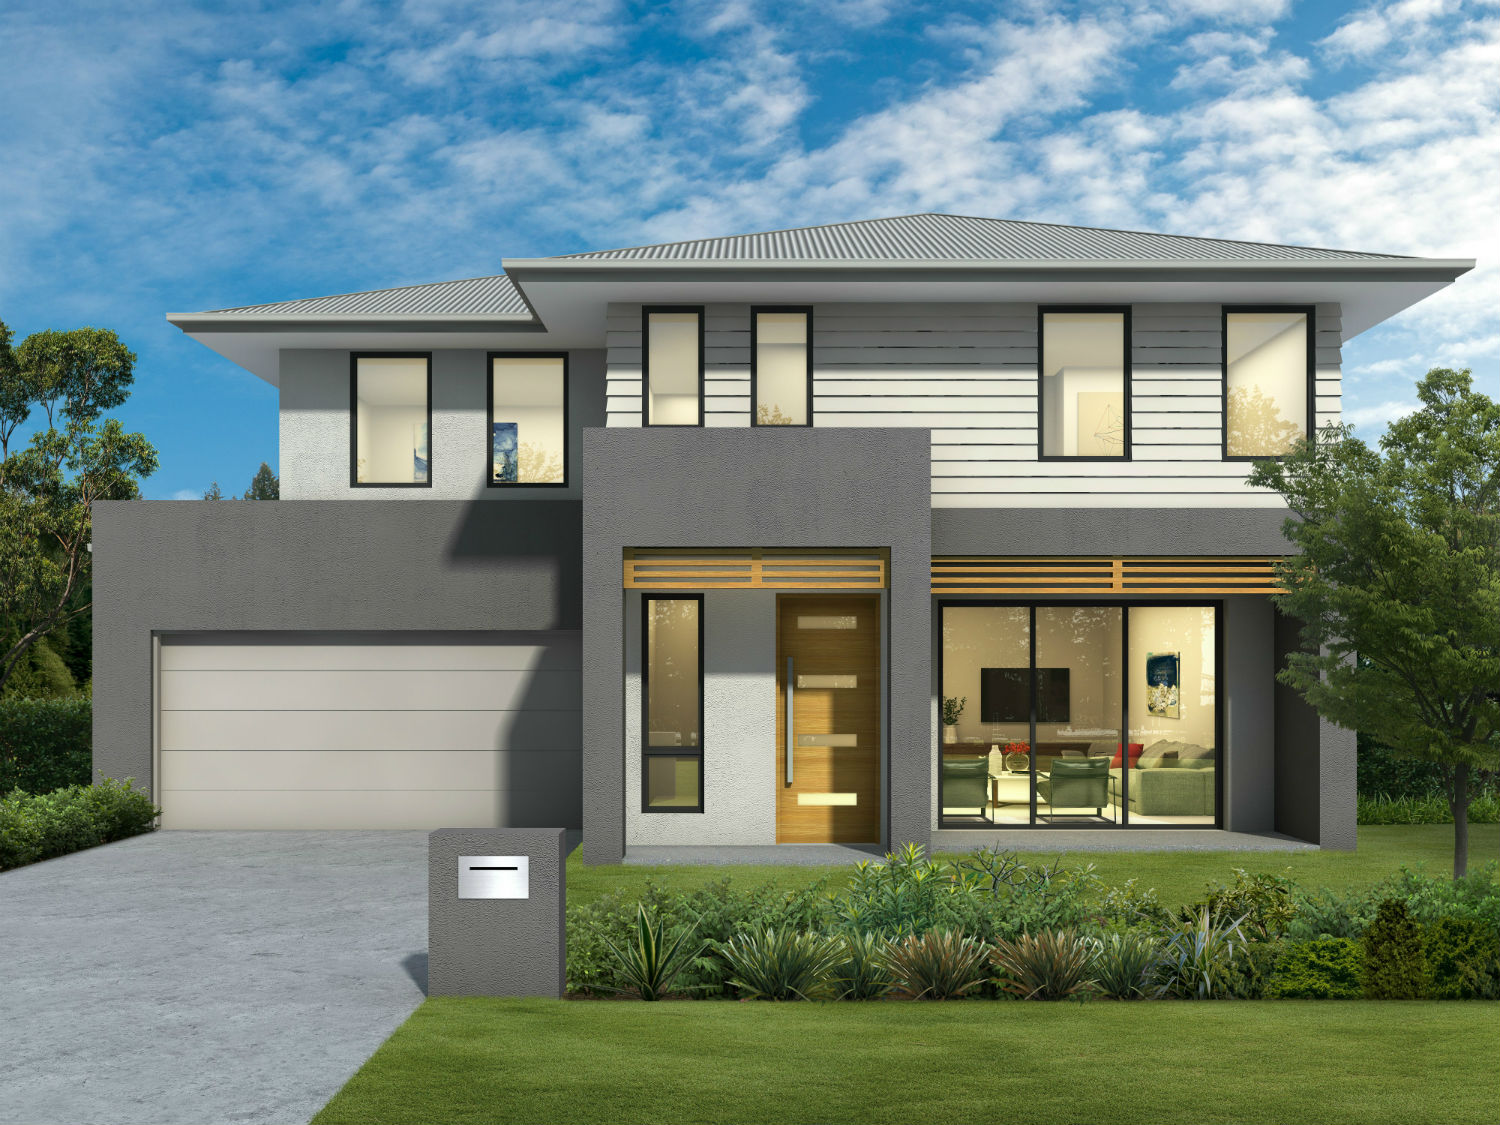 Bella rise riverstone nsw 2765 brand new fixed price for New home packages